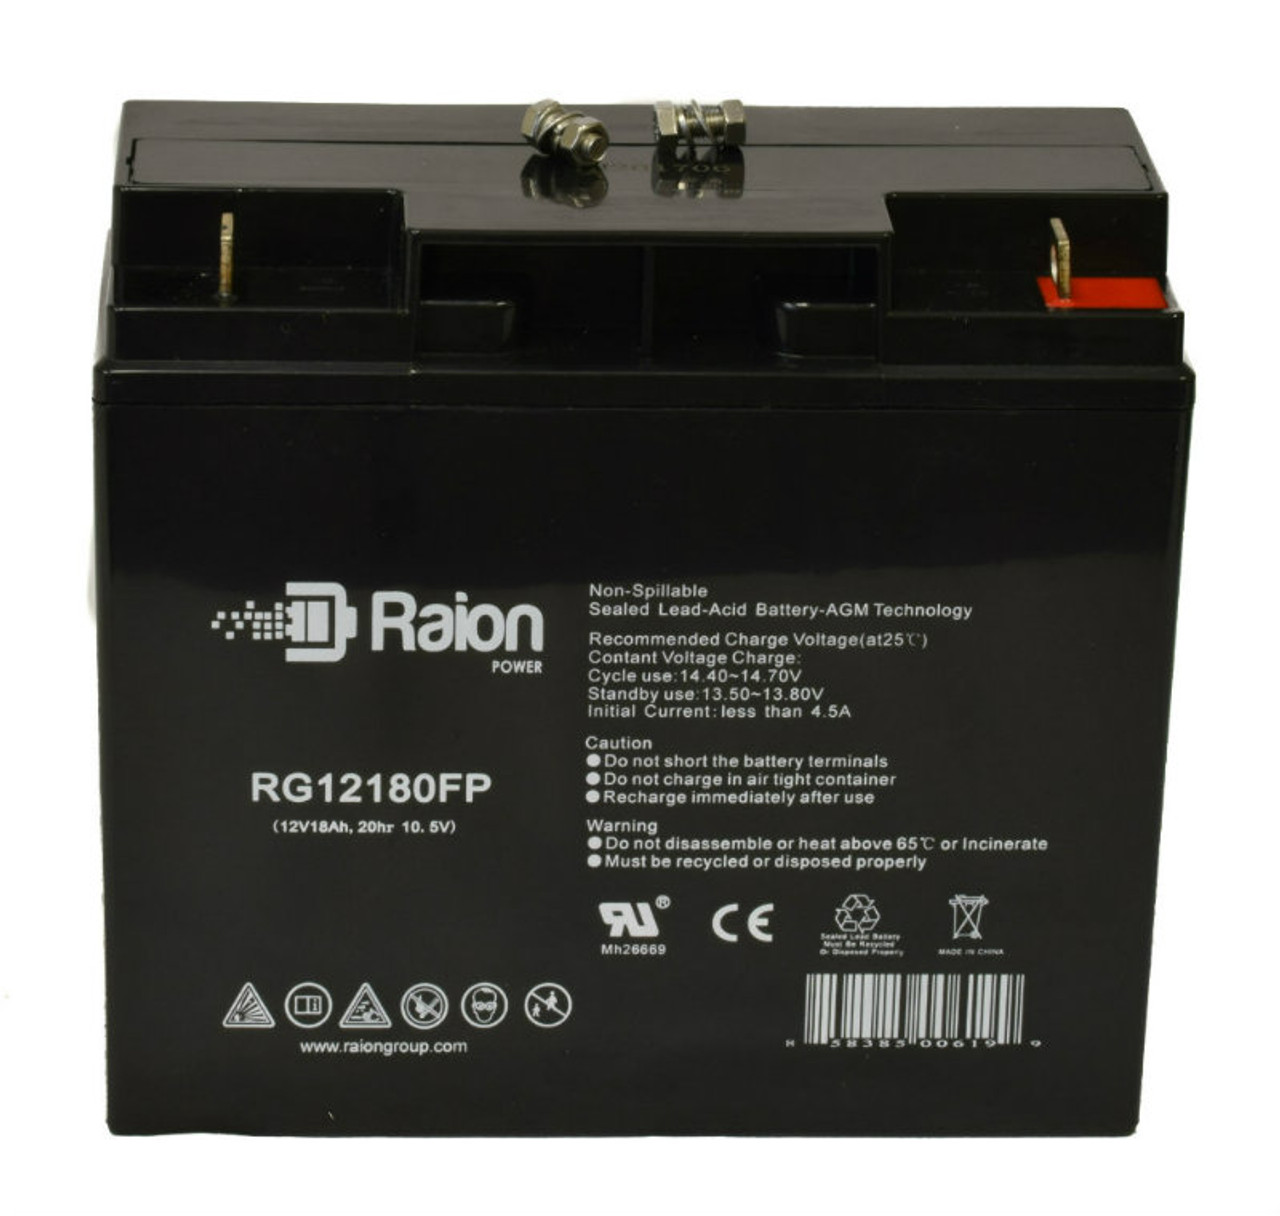 RG12180FP Sealed Lead Acid OEM Replacement Battery For IMC Heartway Nomad PT-3 Electric Wheelchair